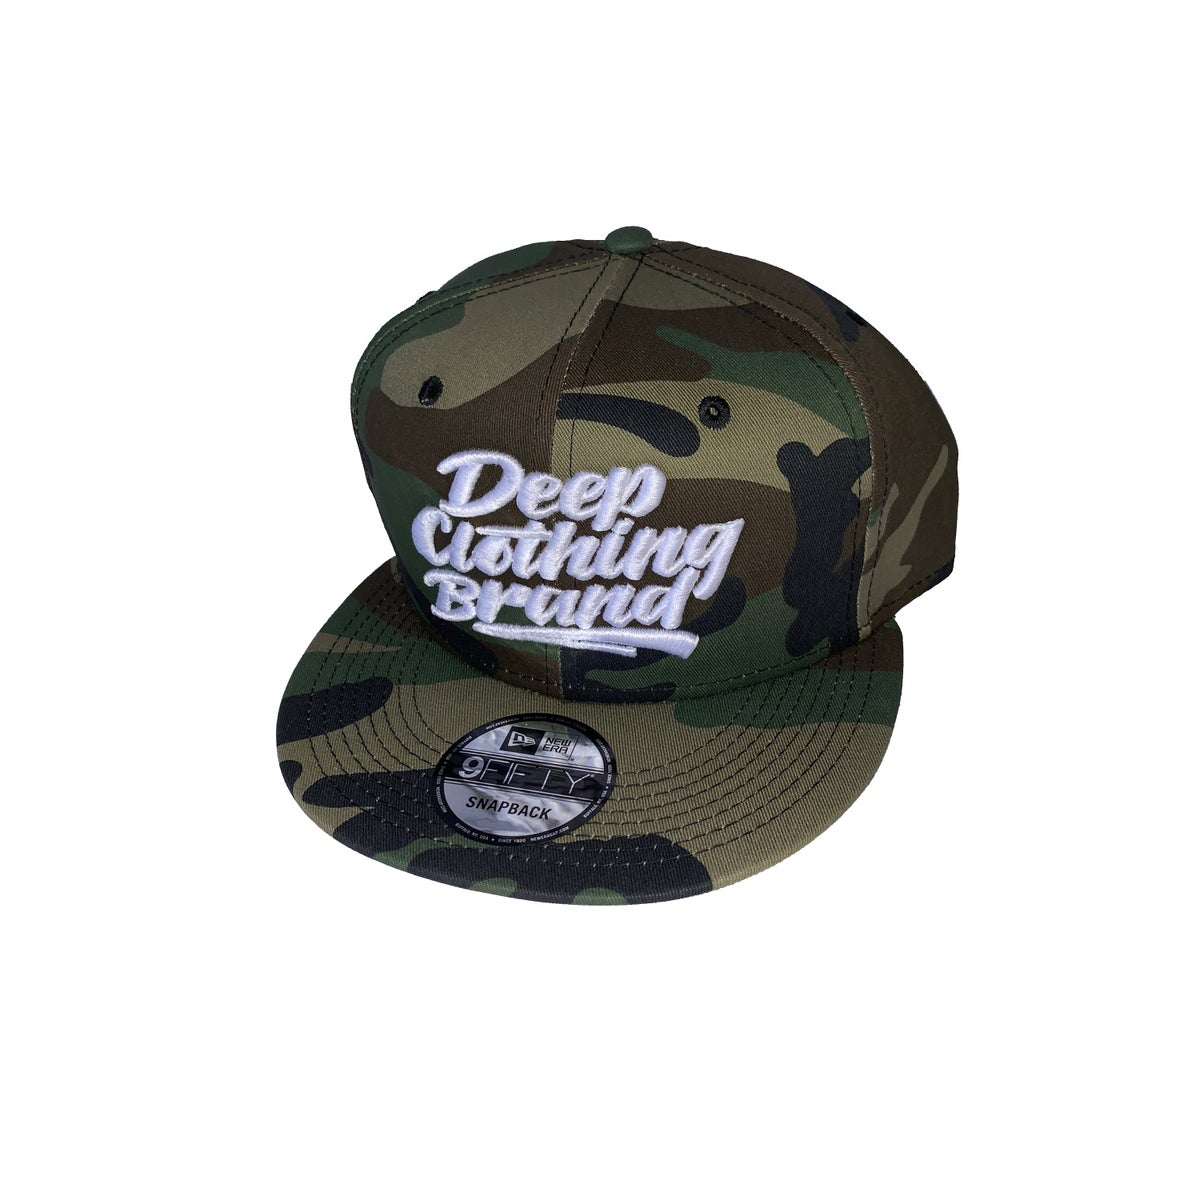 Image of Deep Clothing Brand Logo - New Era Snap Back - Click for inventory